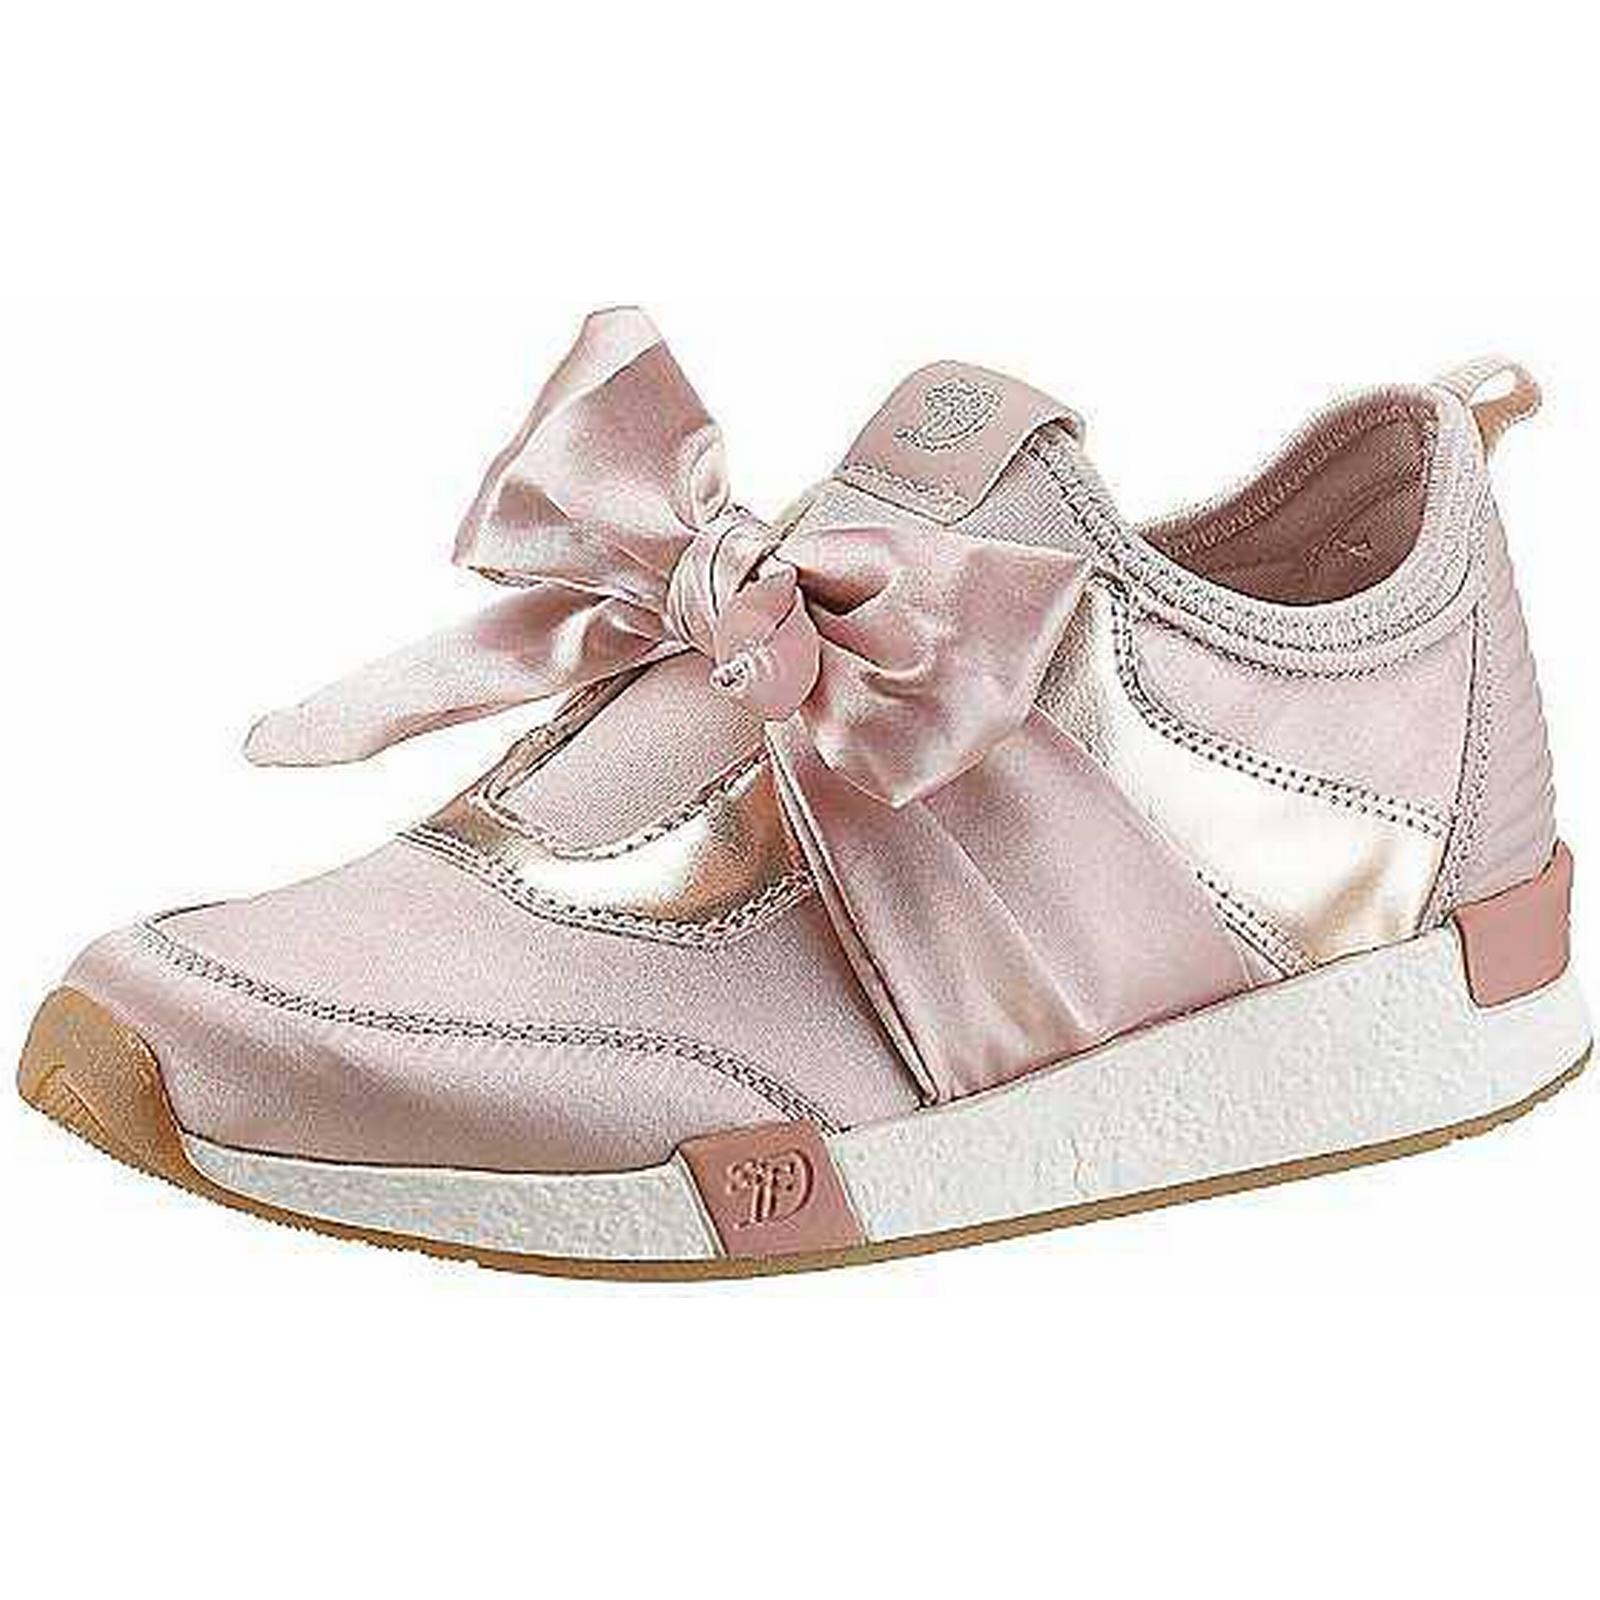 Tom Tailor Tom Bow Band Trainers by Tom Tailor Tailor/Men/Women/cheaper 17fc3c